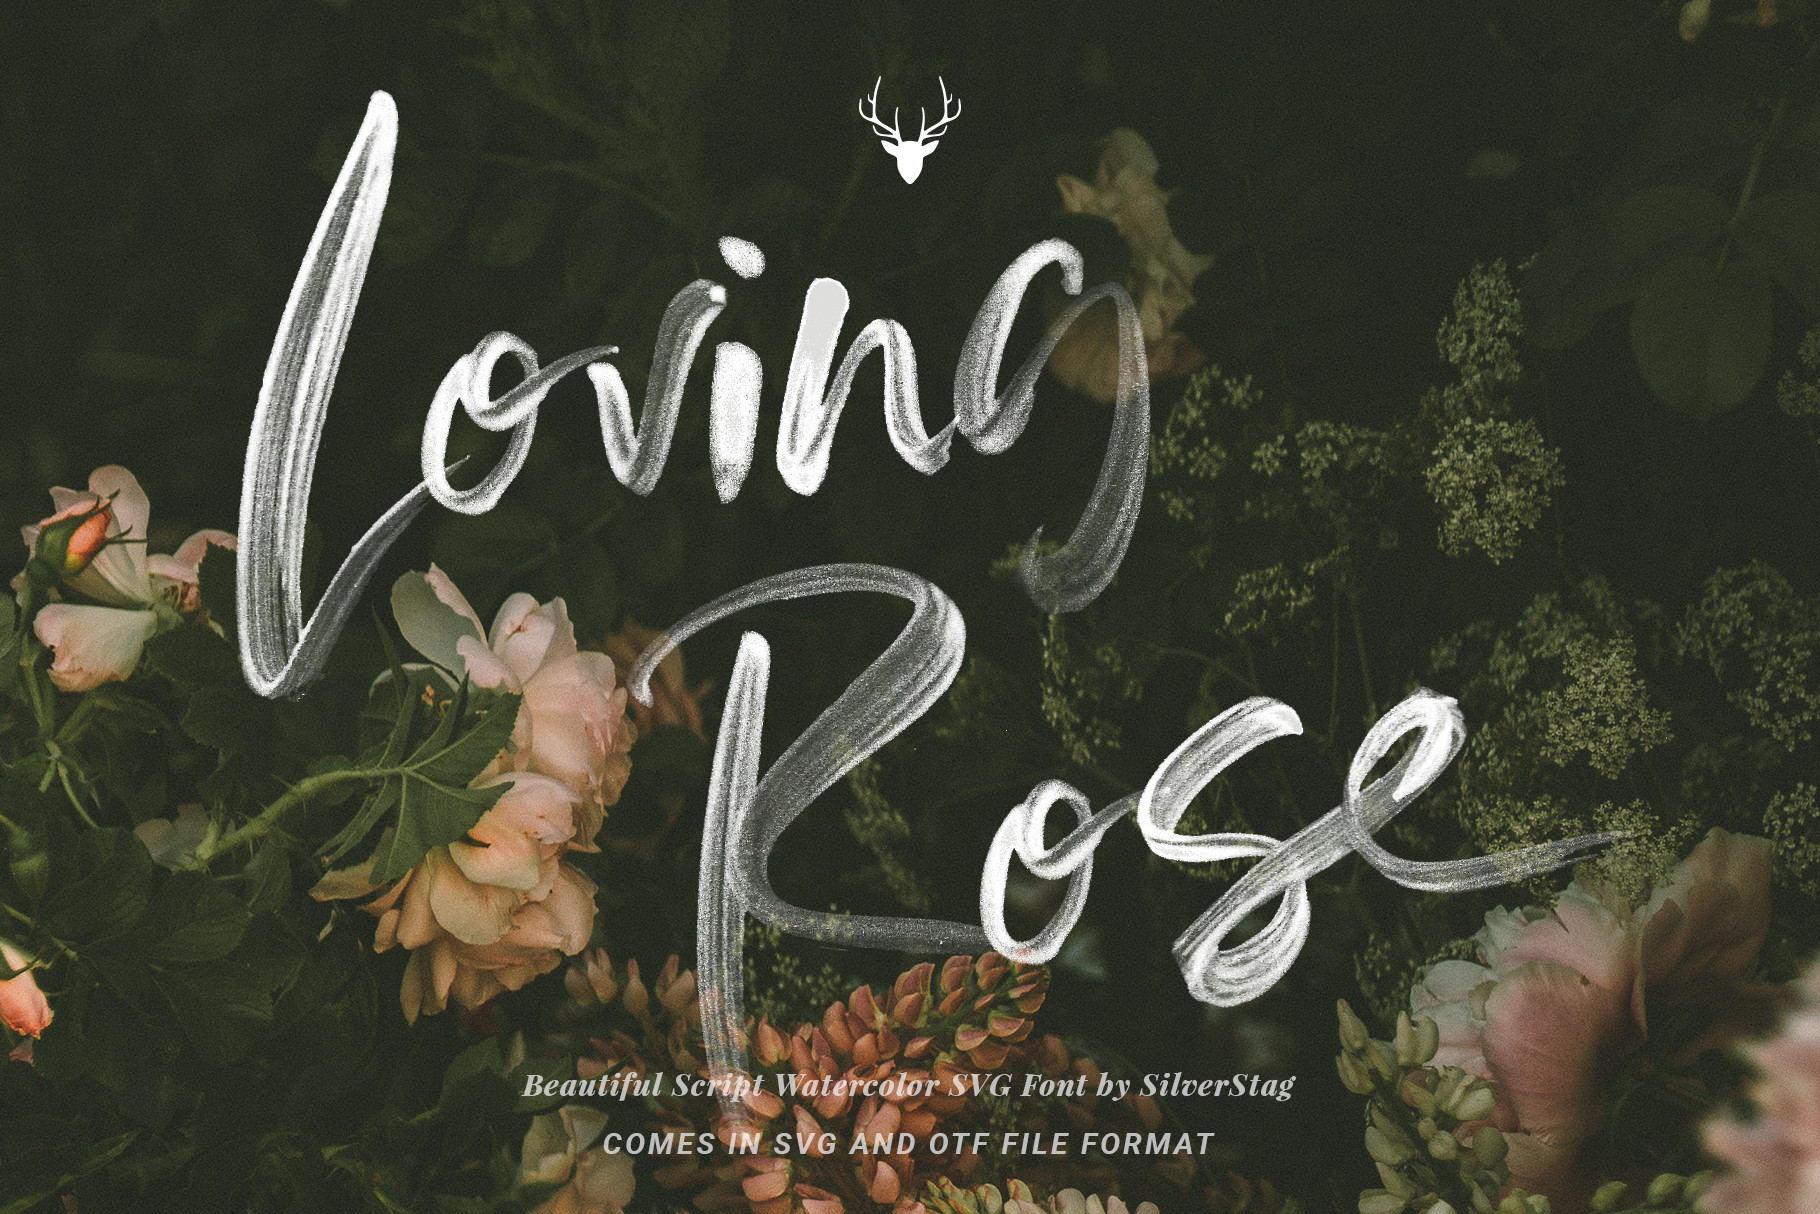 Loving Rose SVG Watercolor Font Pack - Hand Drawn Font example image 1